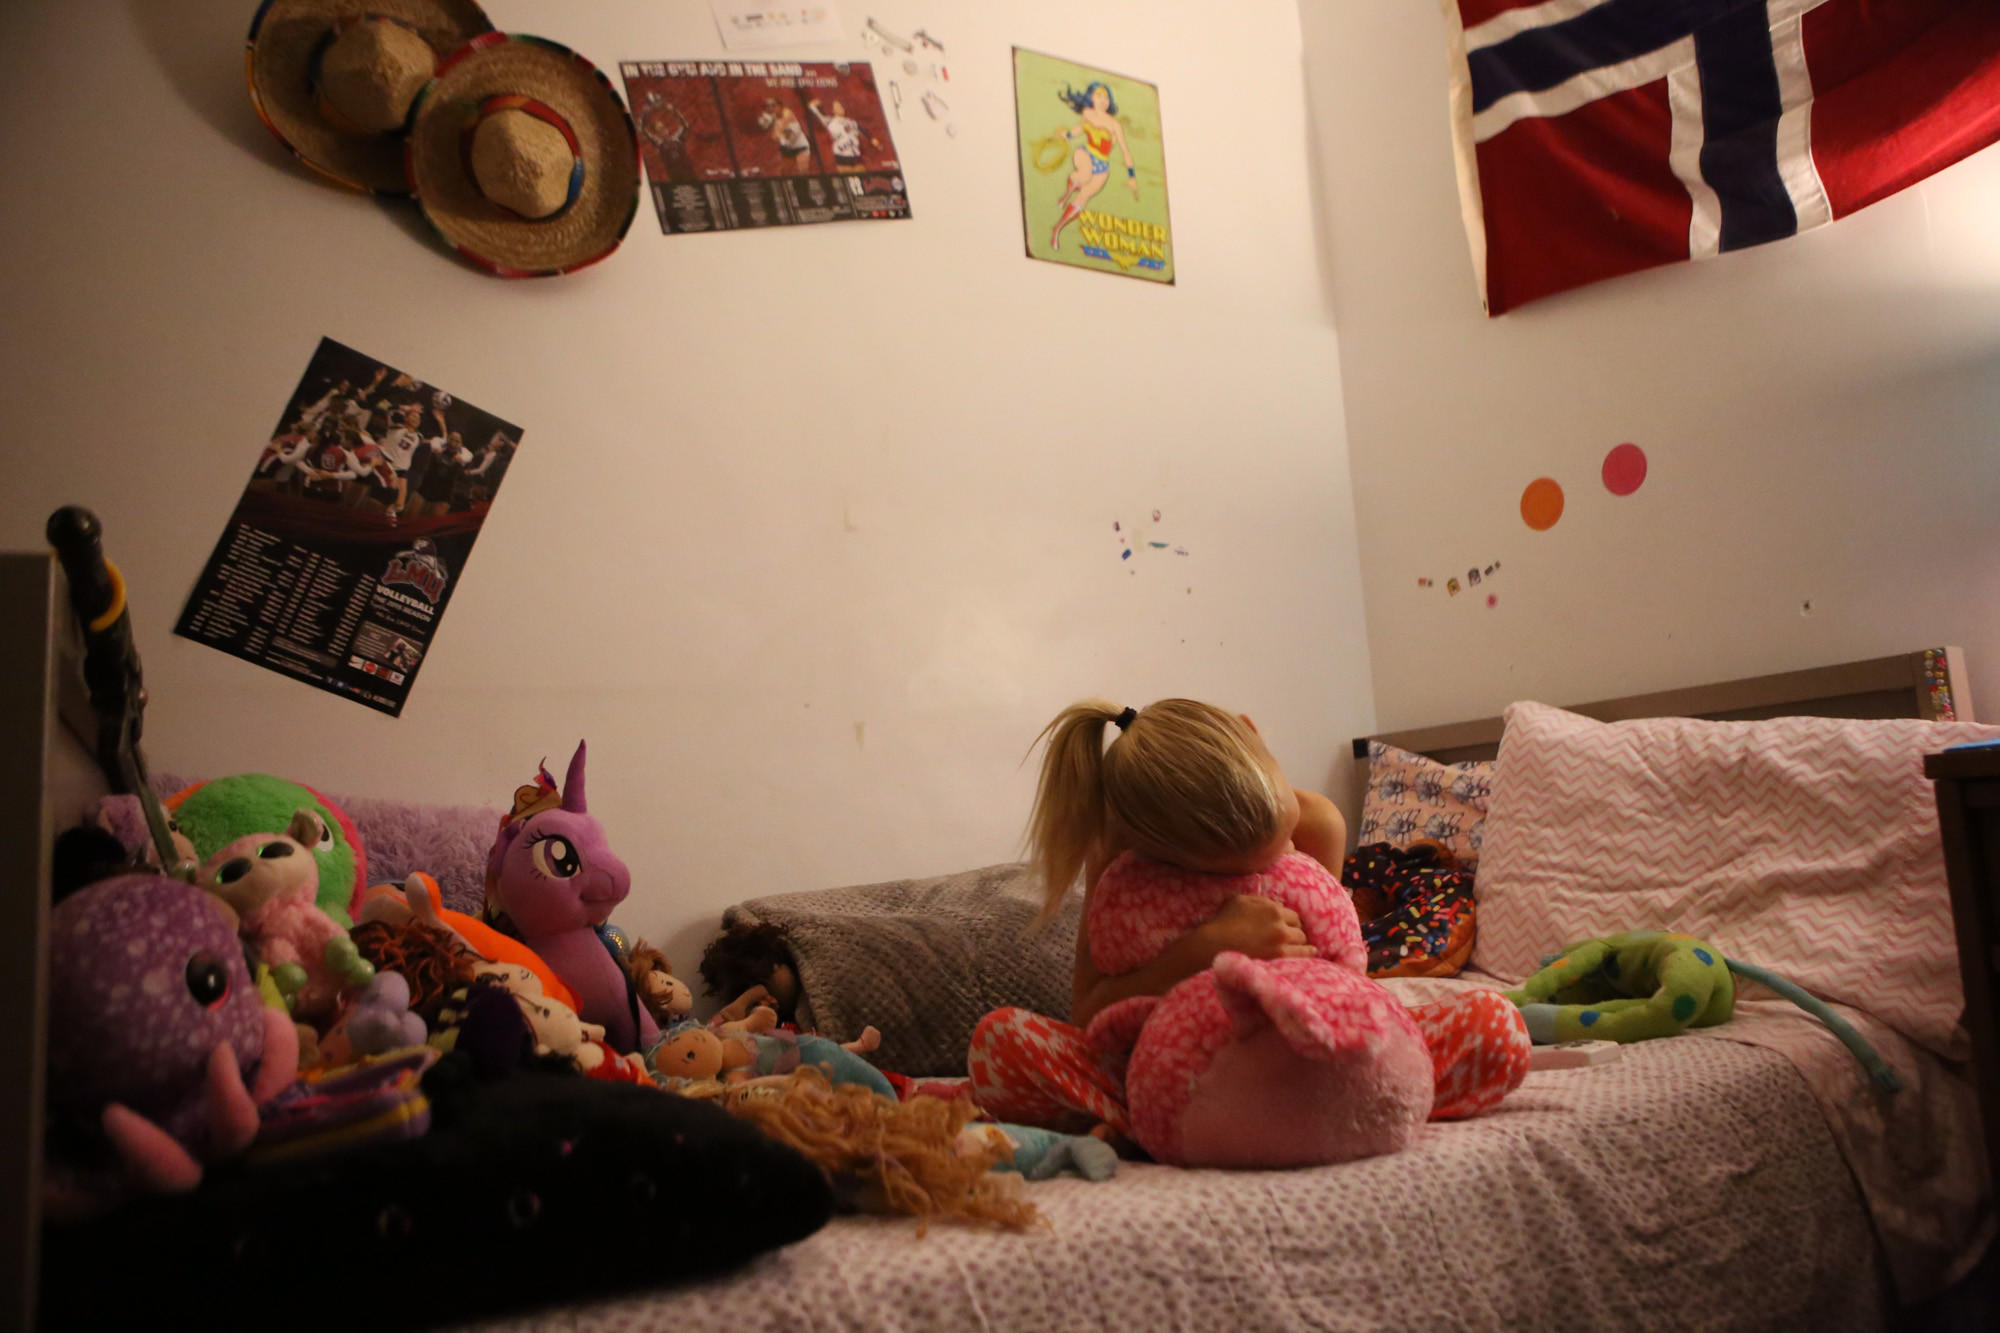 T hugs a stuffed owl on her bed, below a poster of some of her favorite volleyball players.